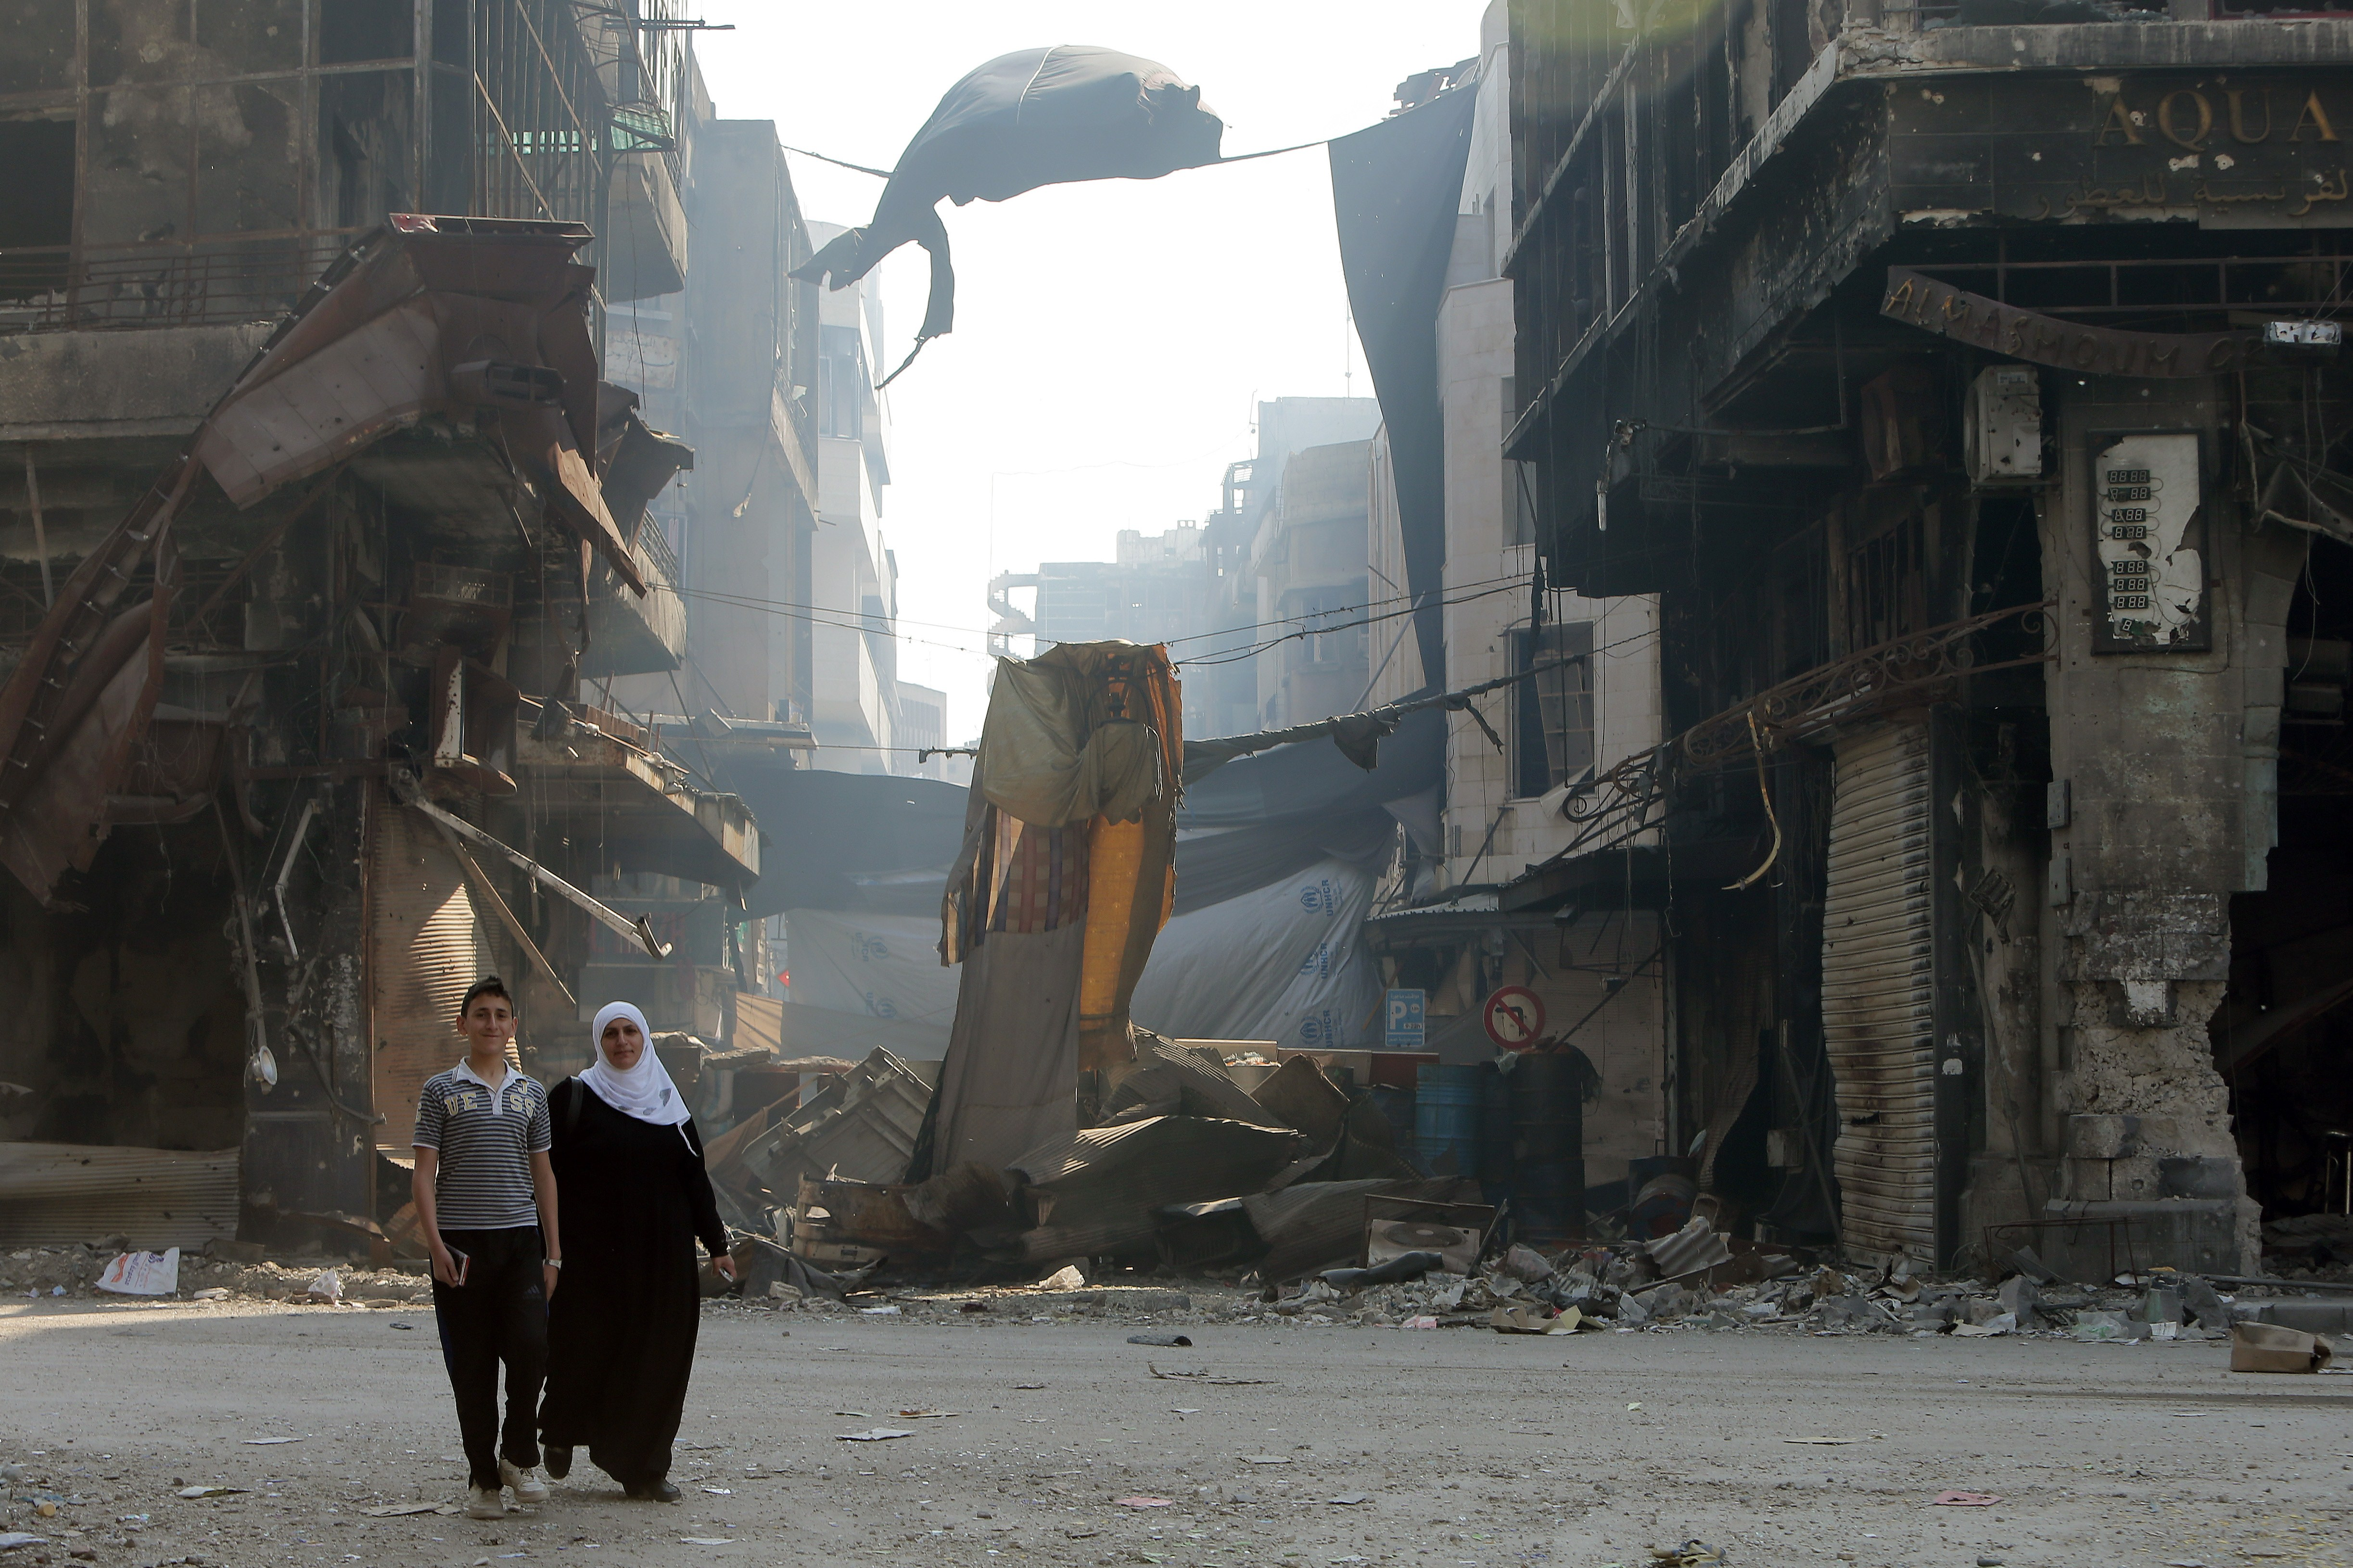 14 hard truths on Syria no one wants to admit